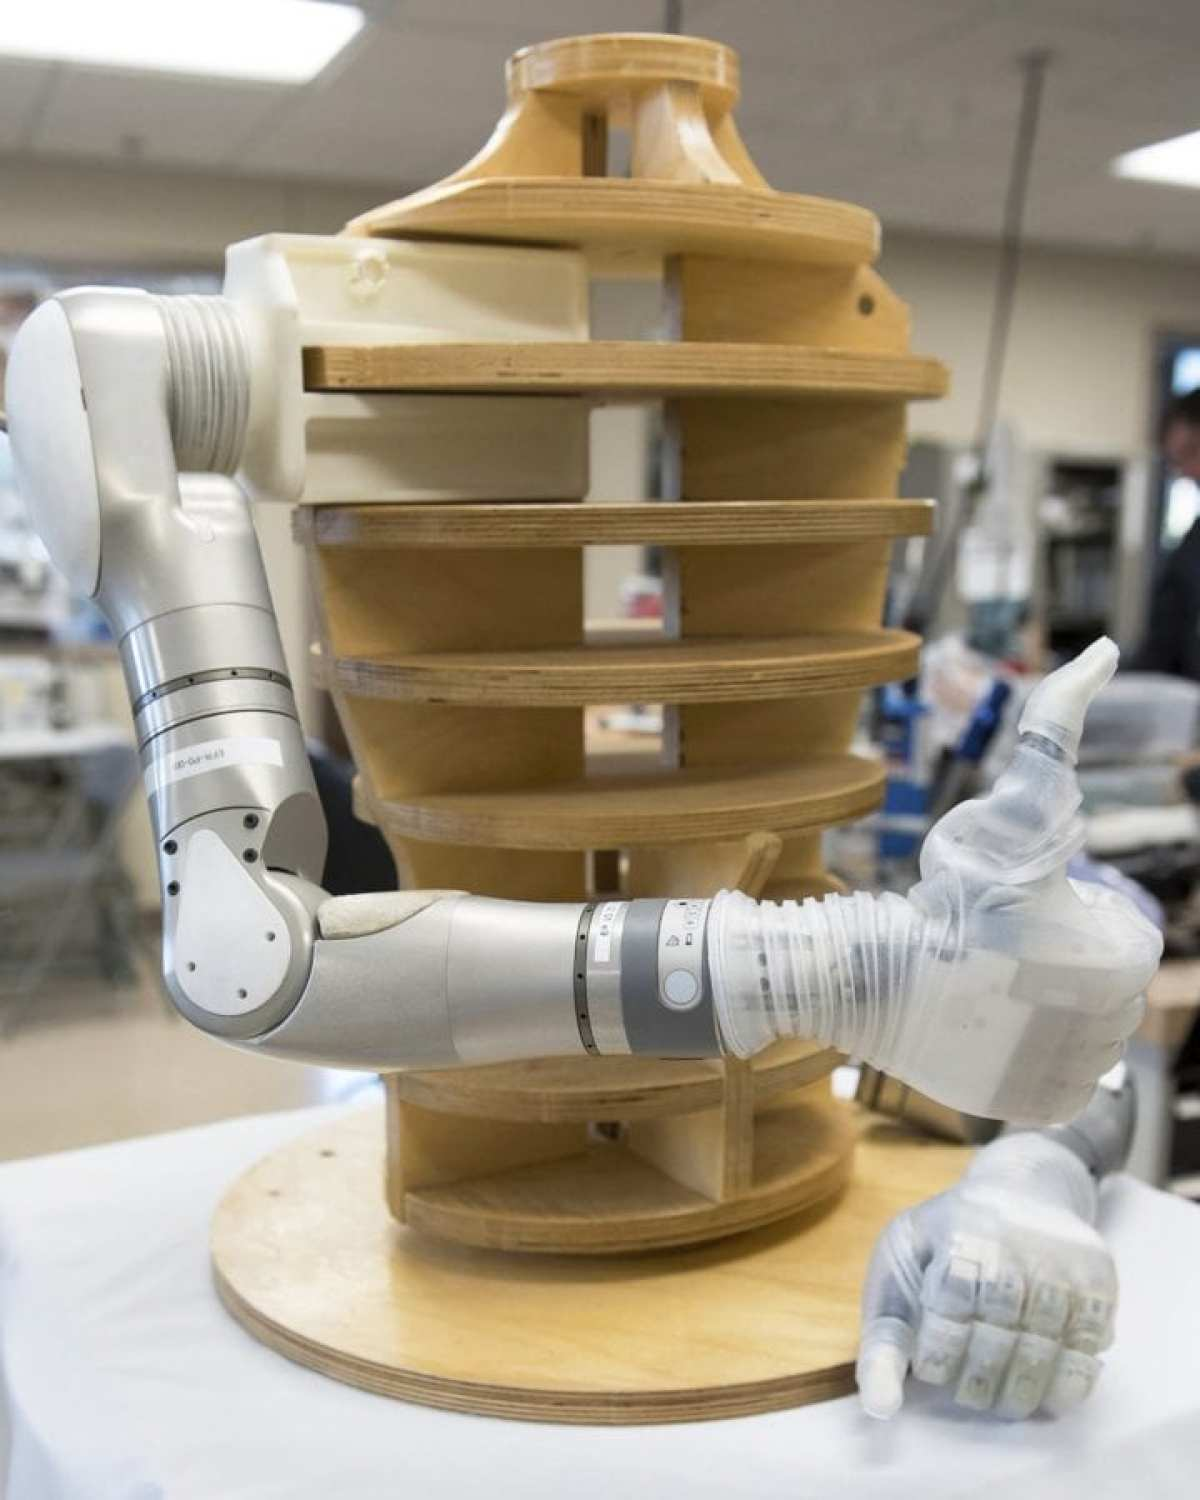 The LUKE Arm prosthesis translates signals from the wearer's muscles to perform complex, simulations, powered movements. In May 2014, it became the first invasive prosthesis to receive FDA approval.